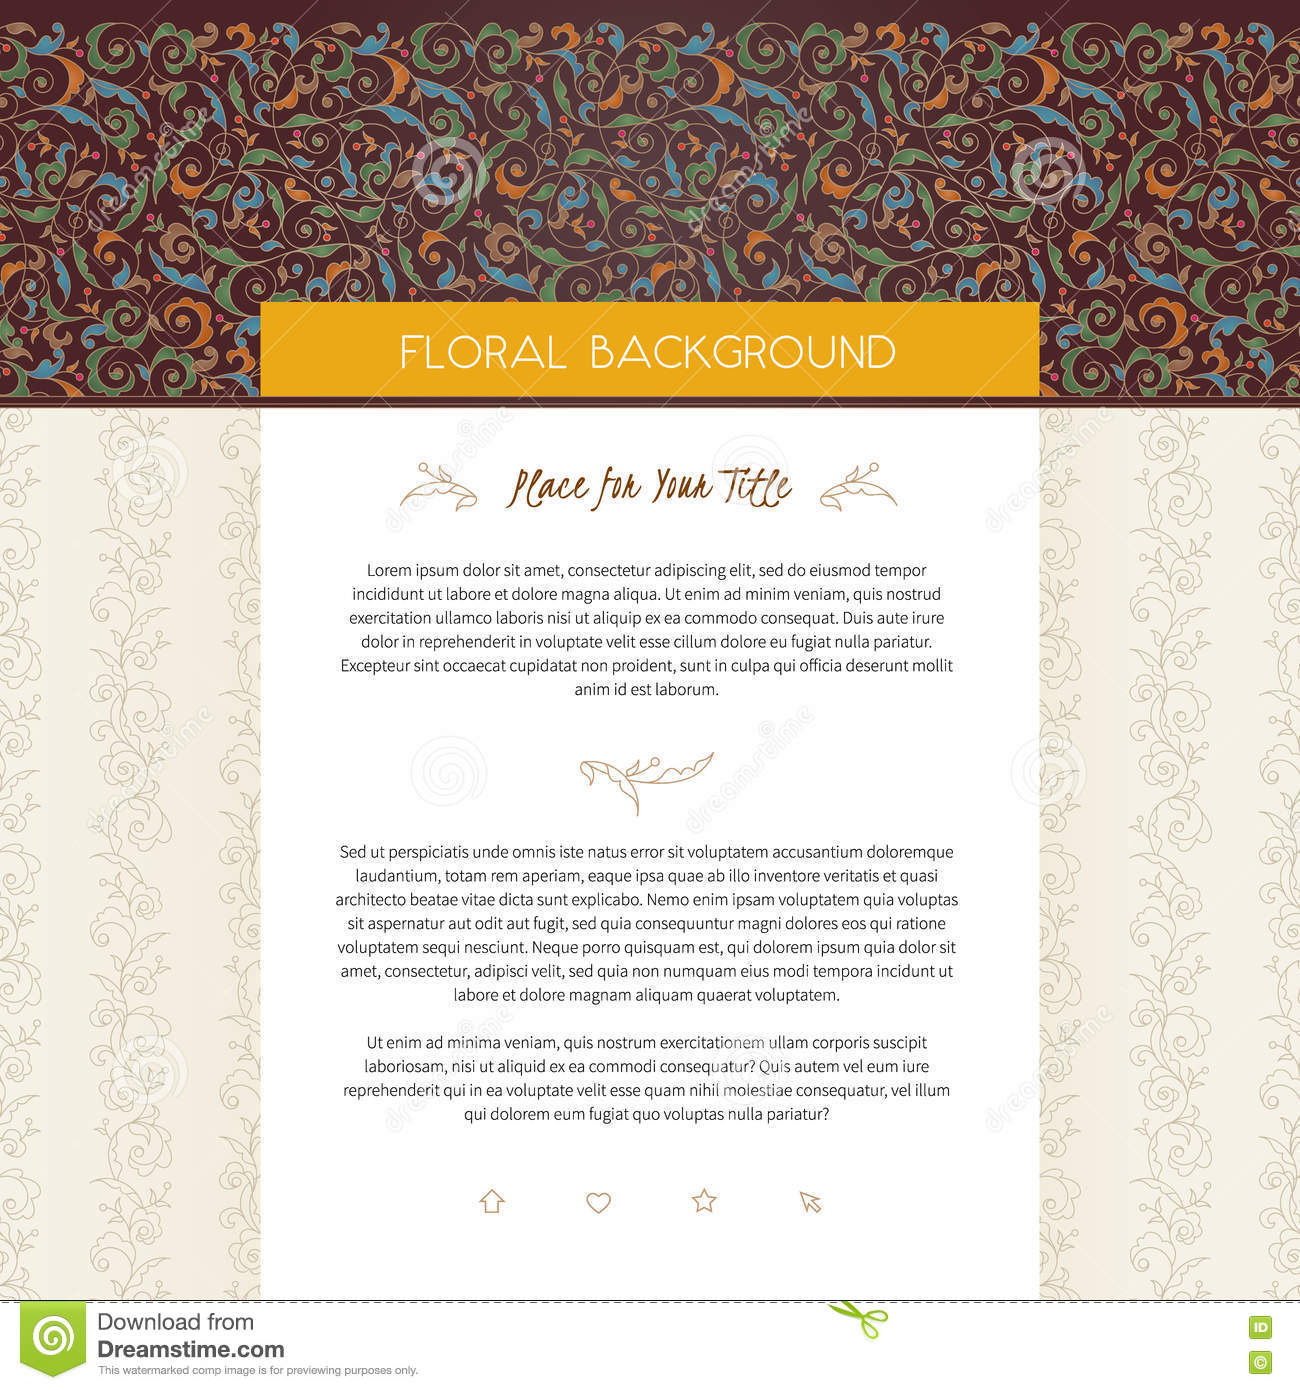 Vector web page design template in floral style.